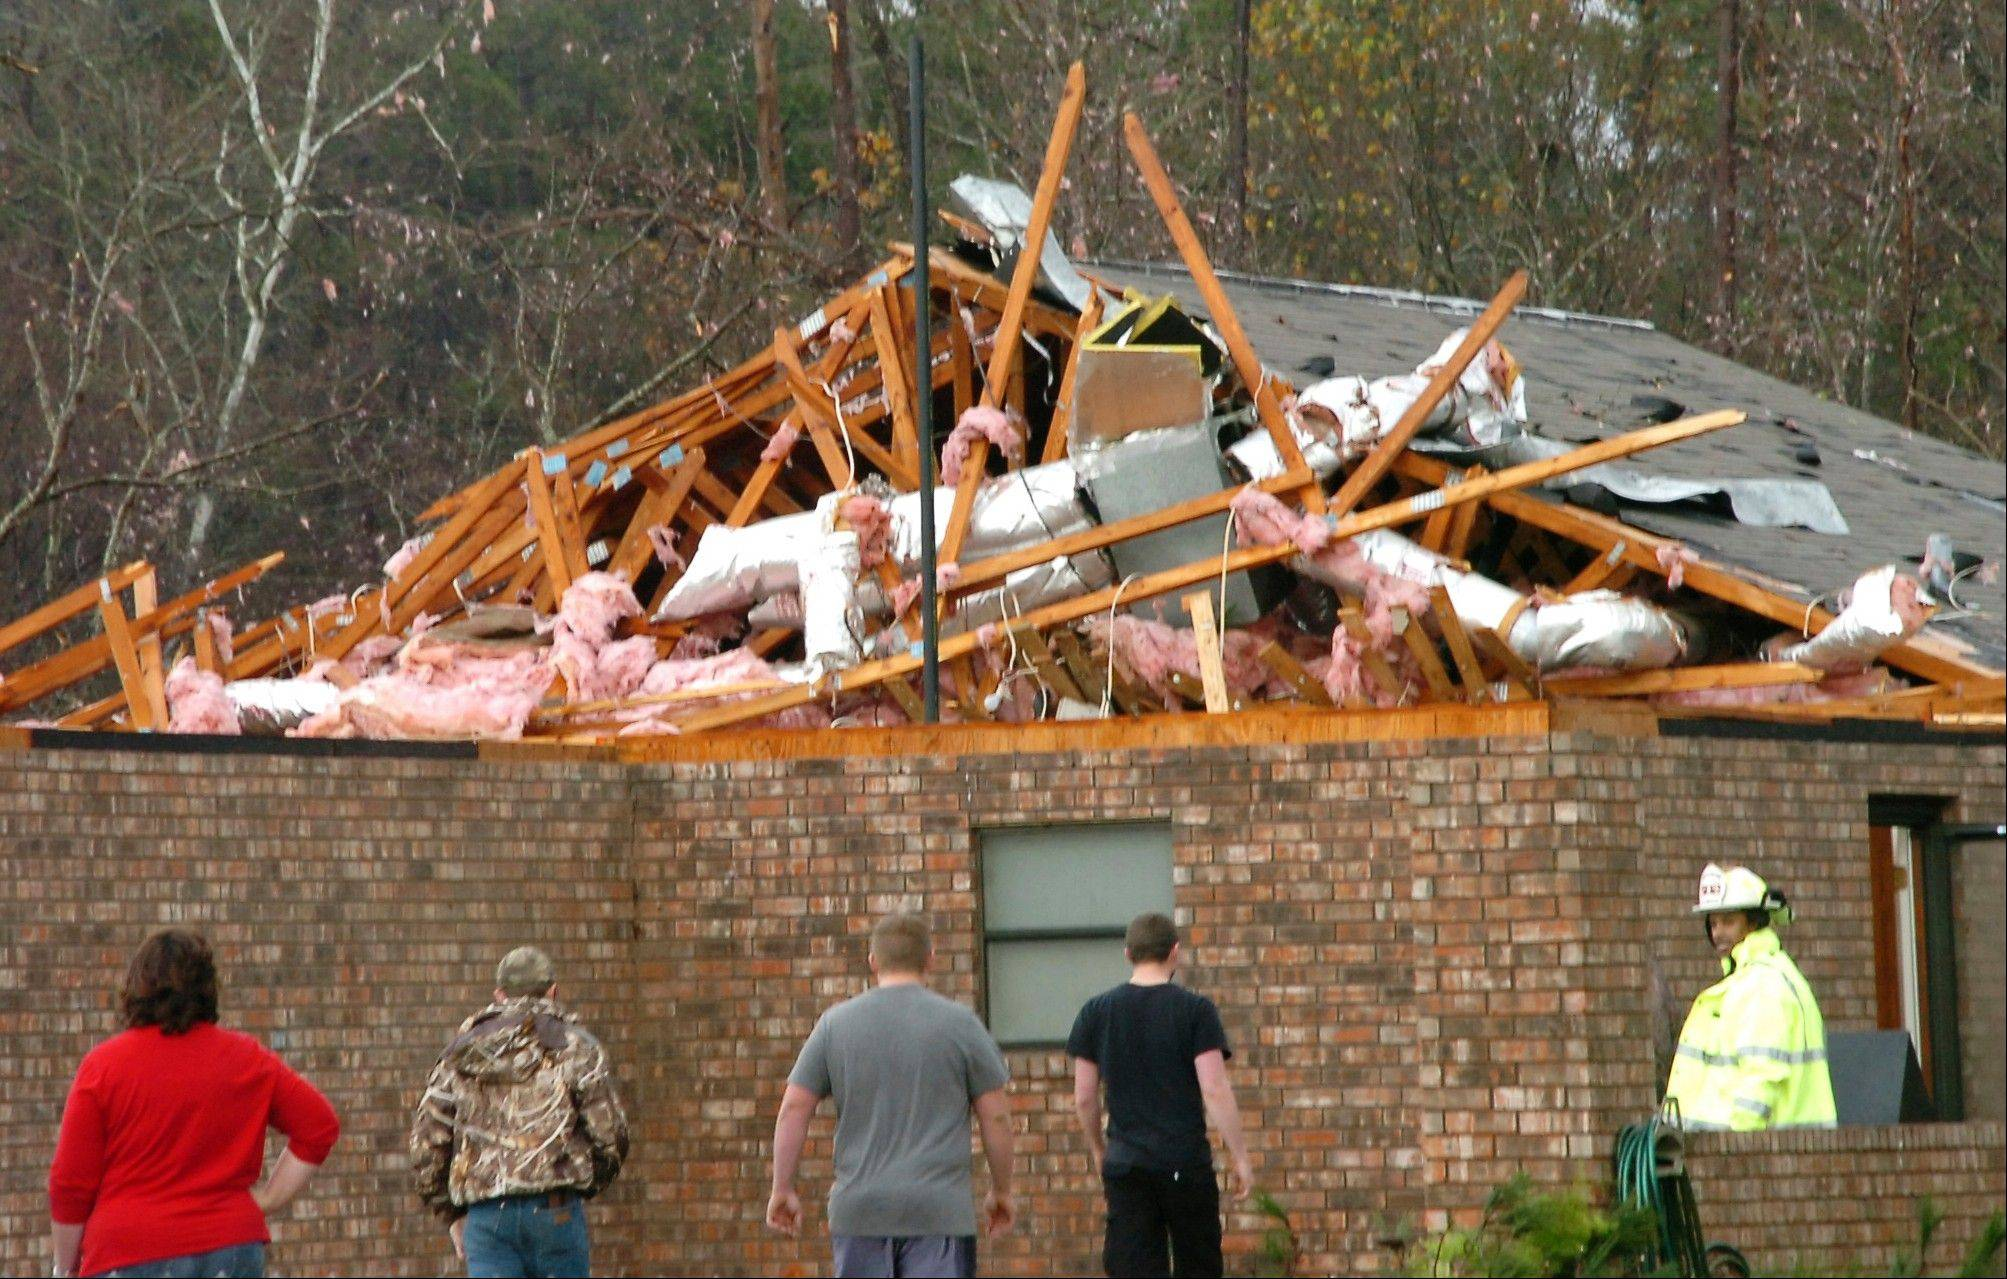 A house in Tioga, La., is severely damaged after an apparent tornado tore through the area Tuesday, Dec. 25, 2012.